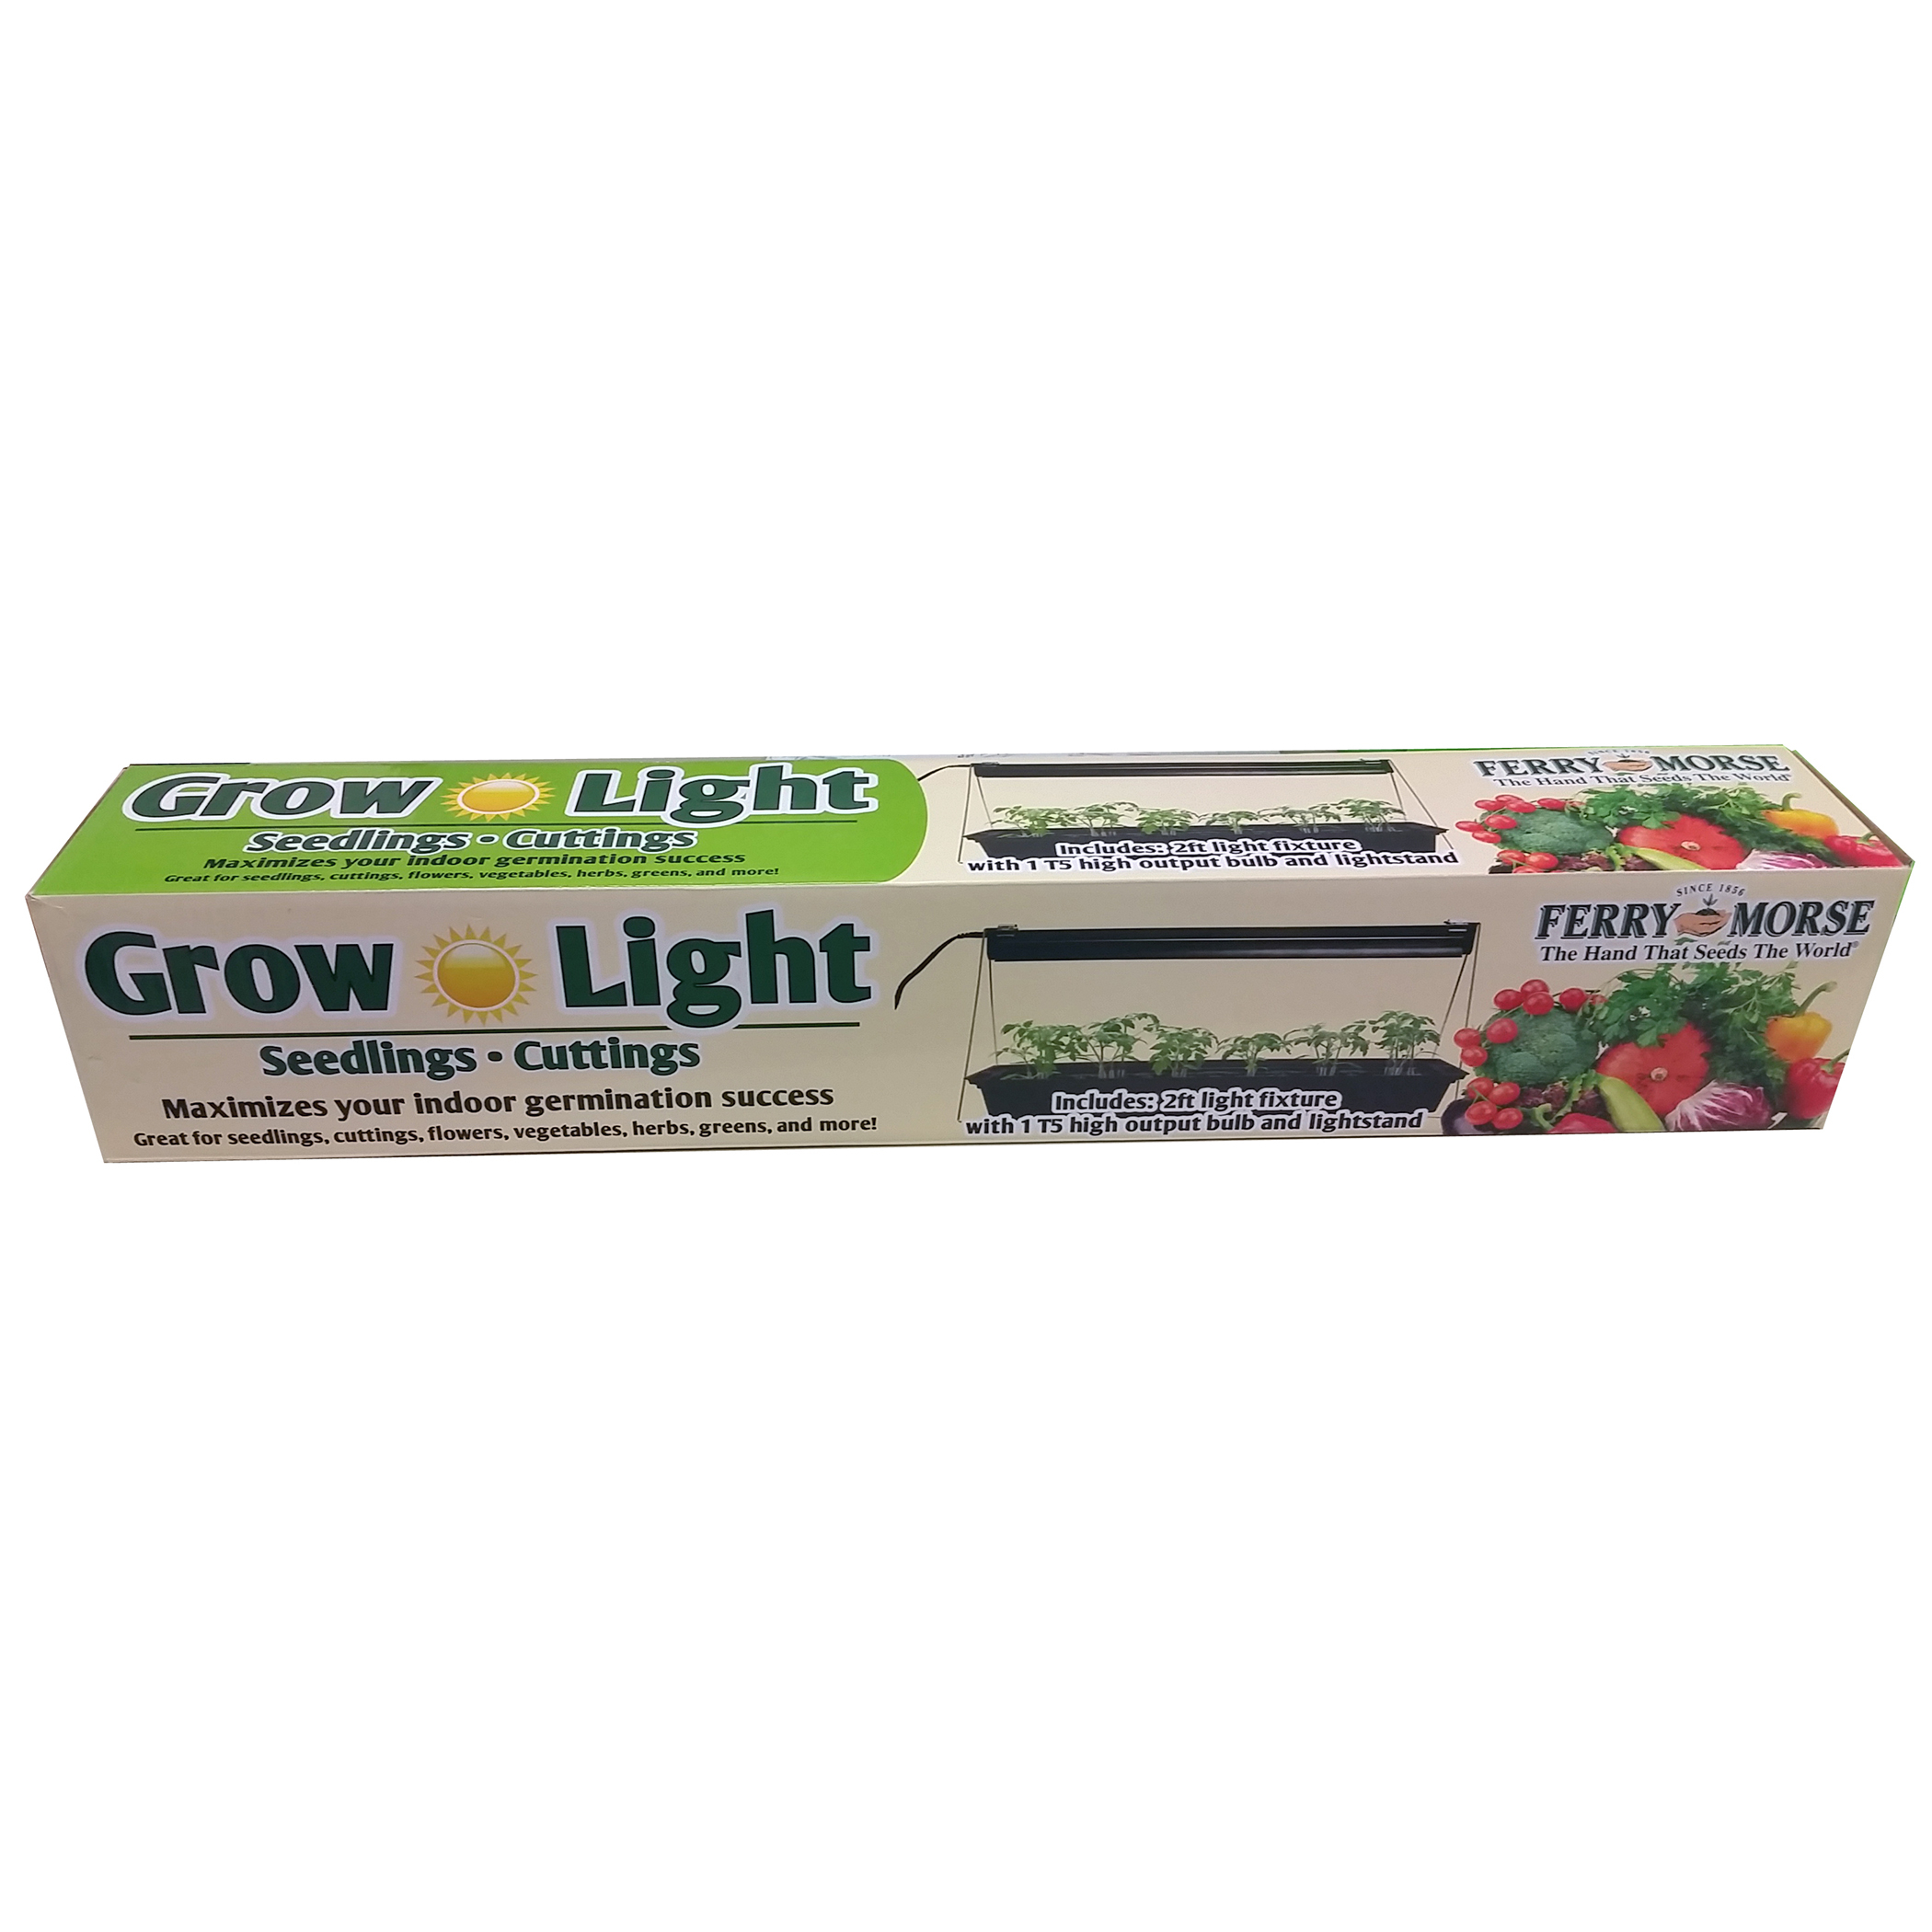 Plantation Products KLIGHT 2' Grow Light For Seedling & Cuttings